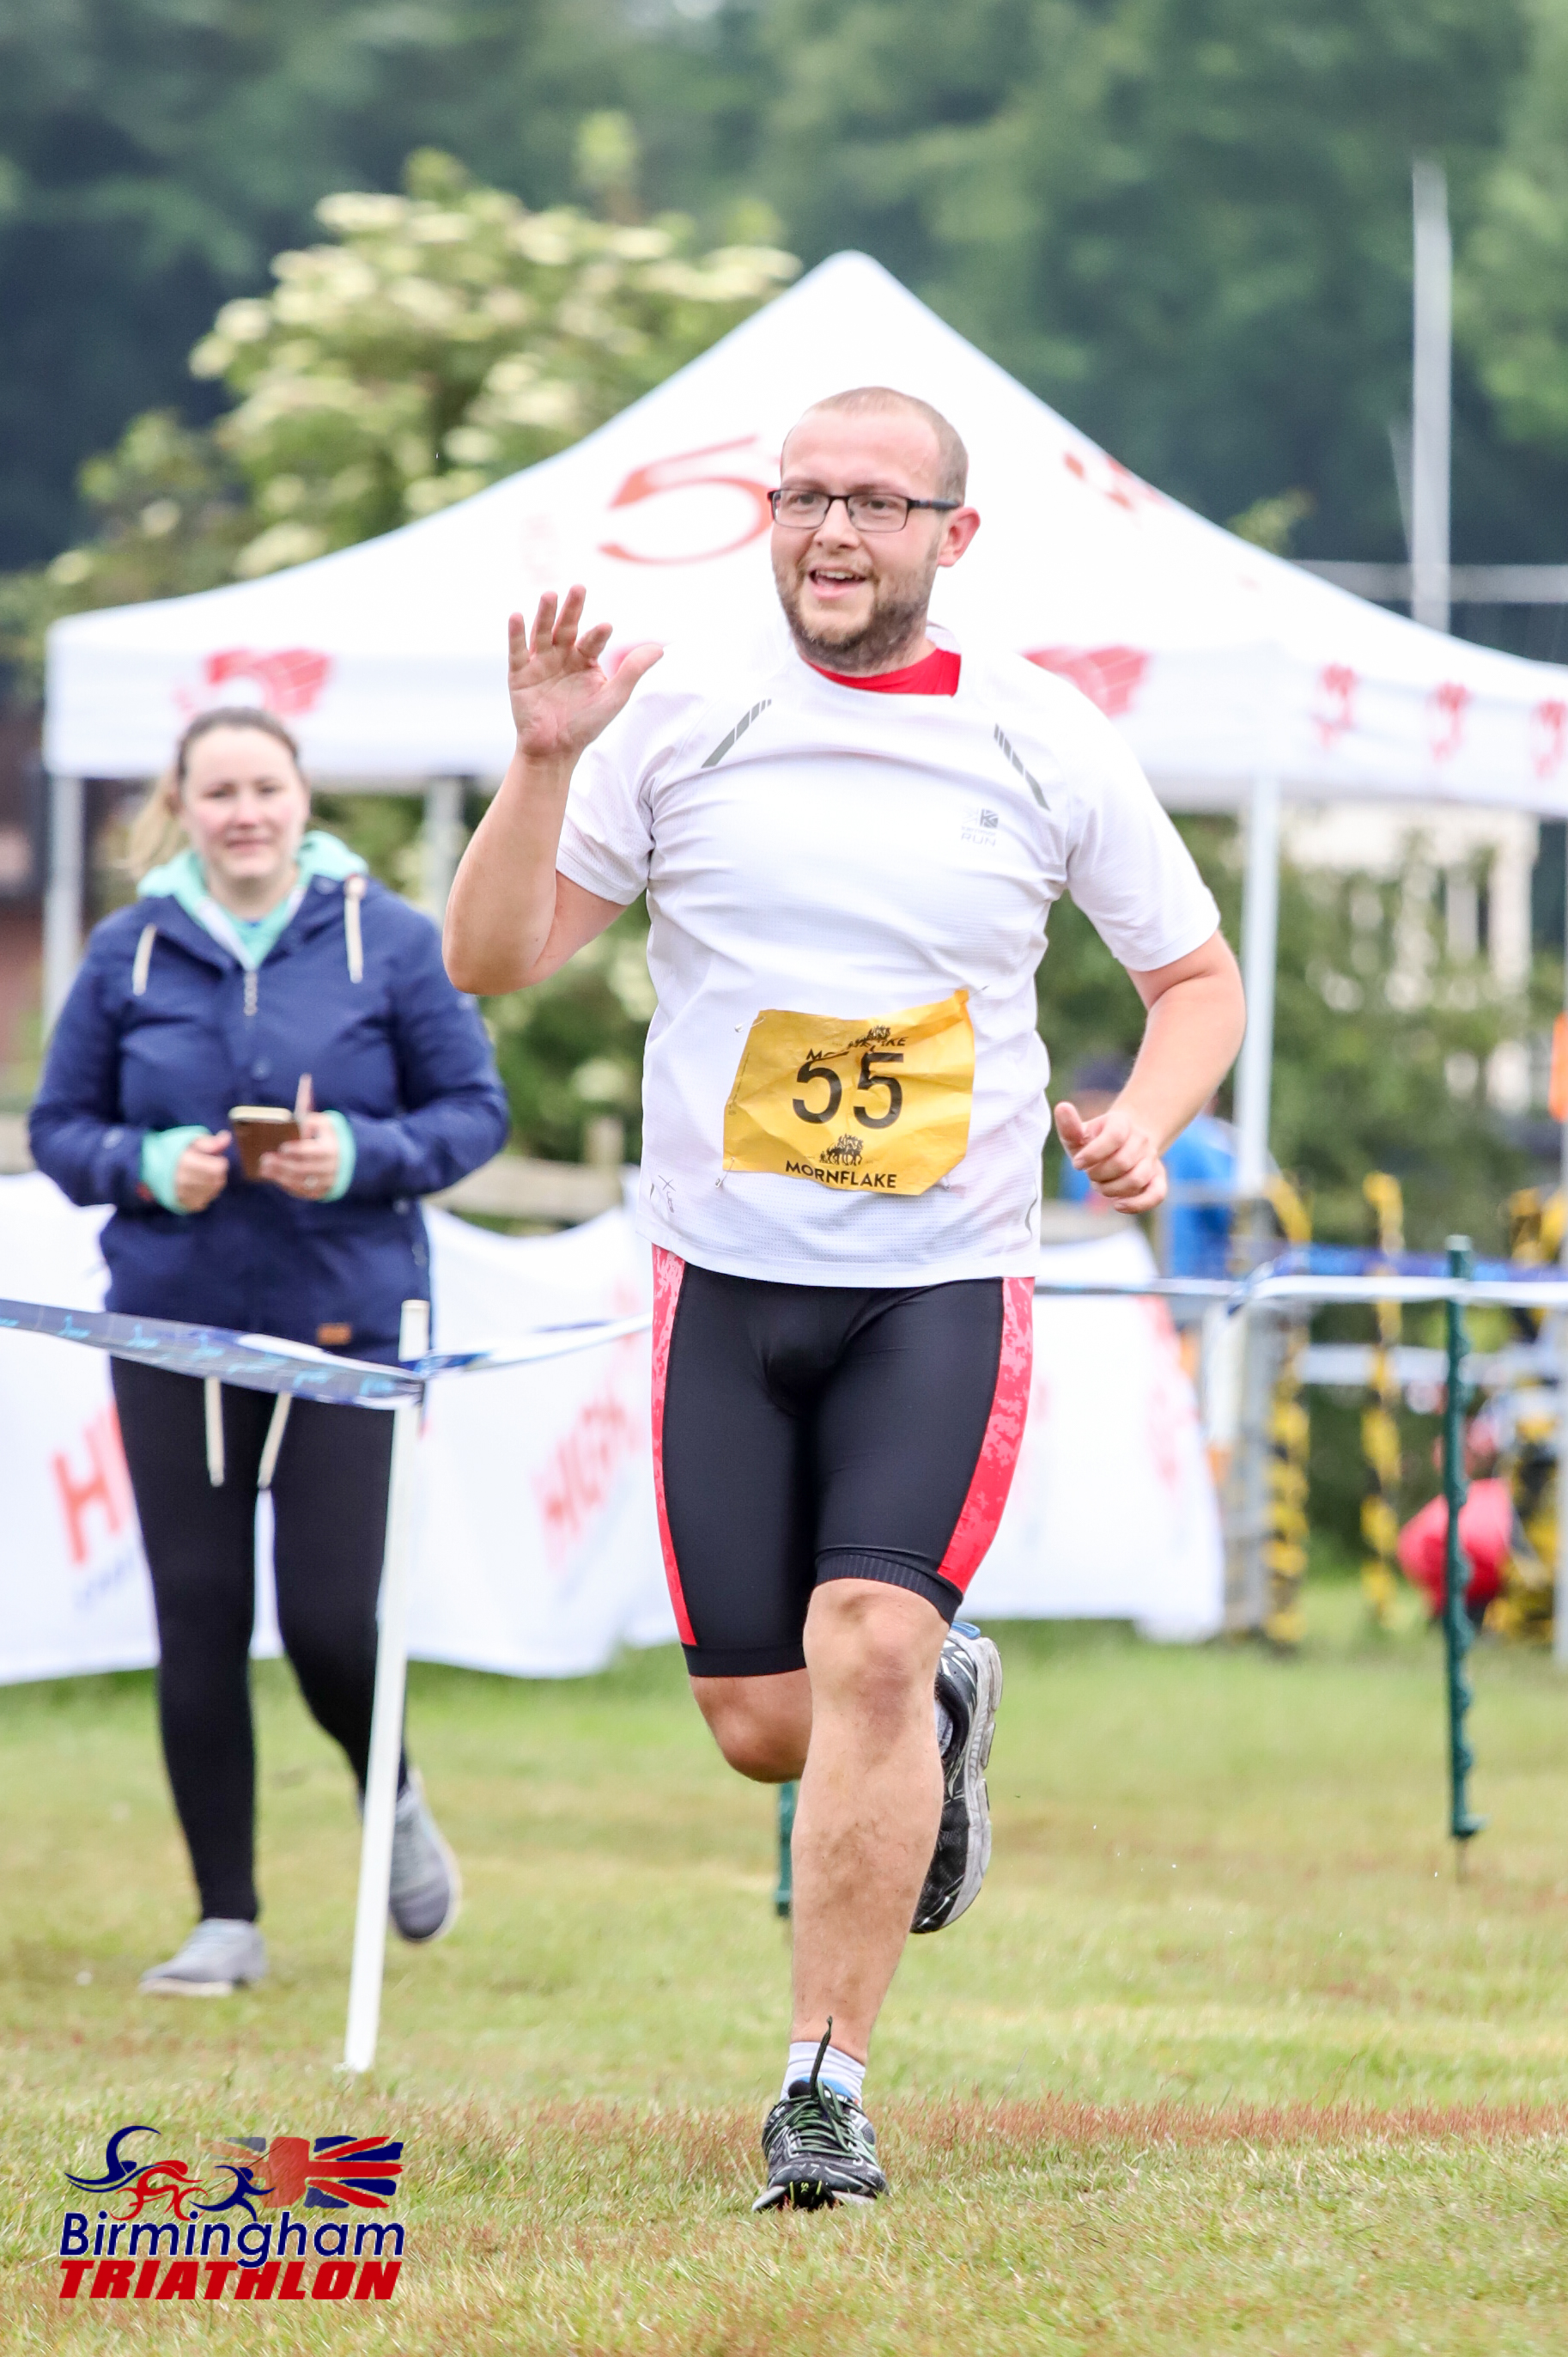 Birmingham_Triathlon_2019-Run-78_.55